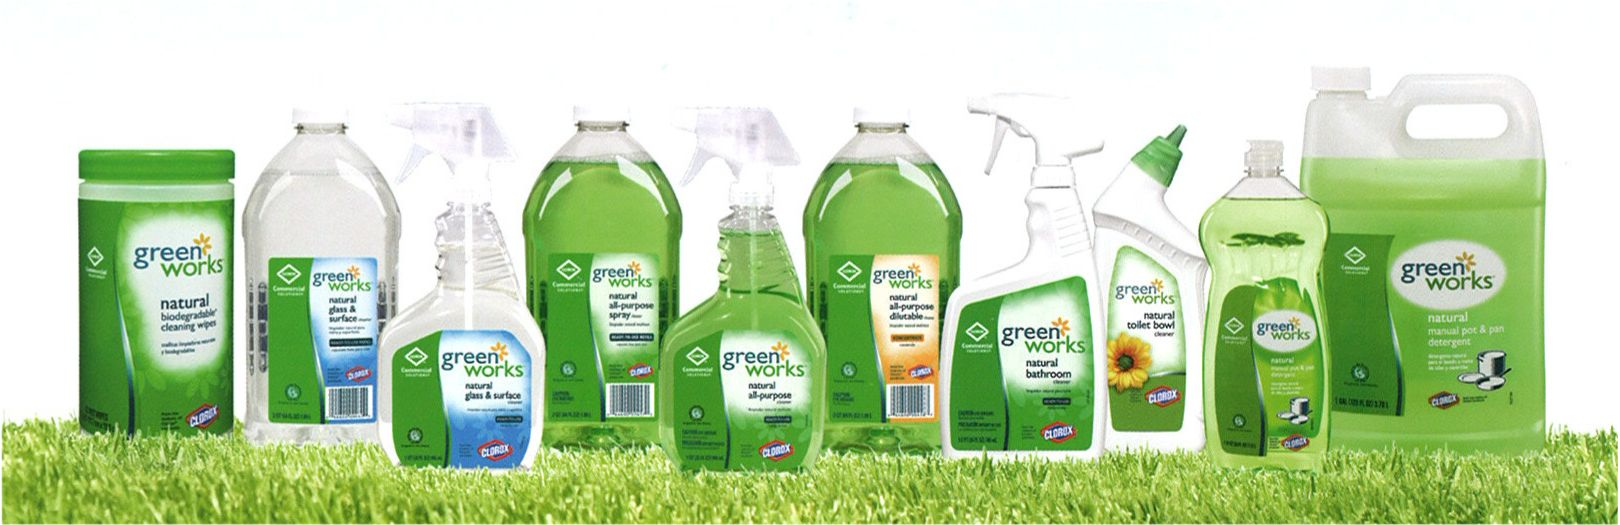 Green cleaning services dallas house green cleaning for Green products for the home